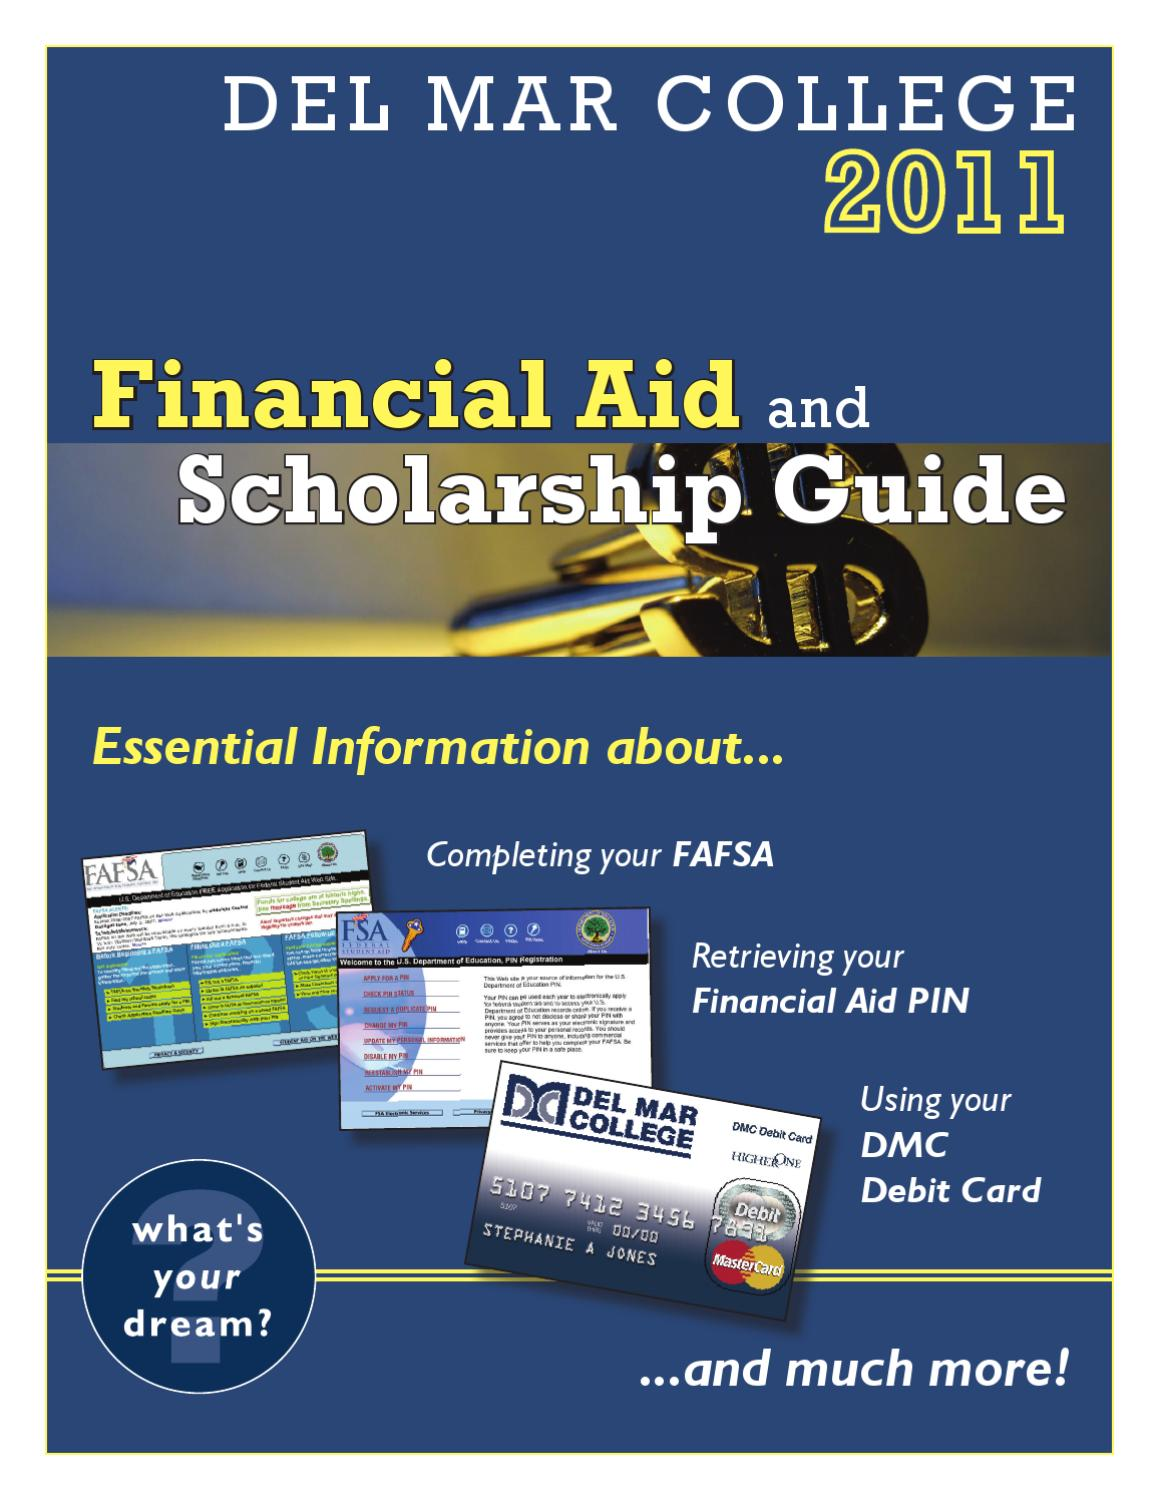 Financial Aid and Scholarship Guide by Del Mar College